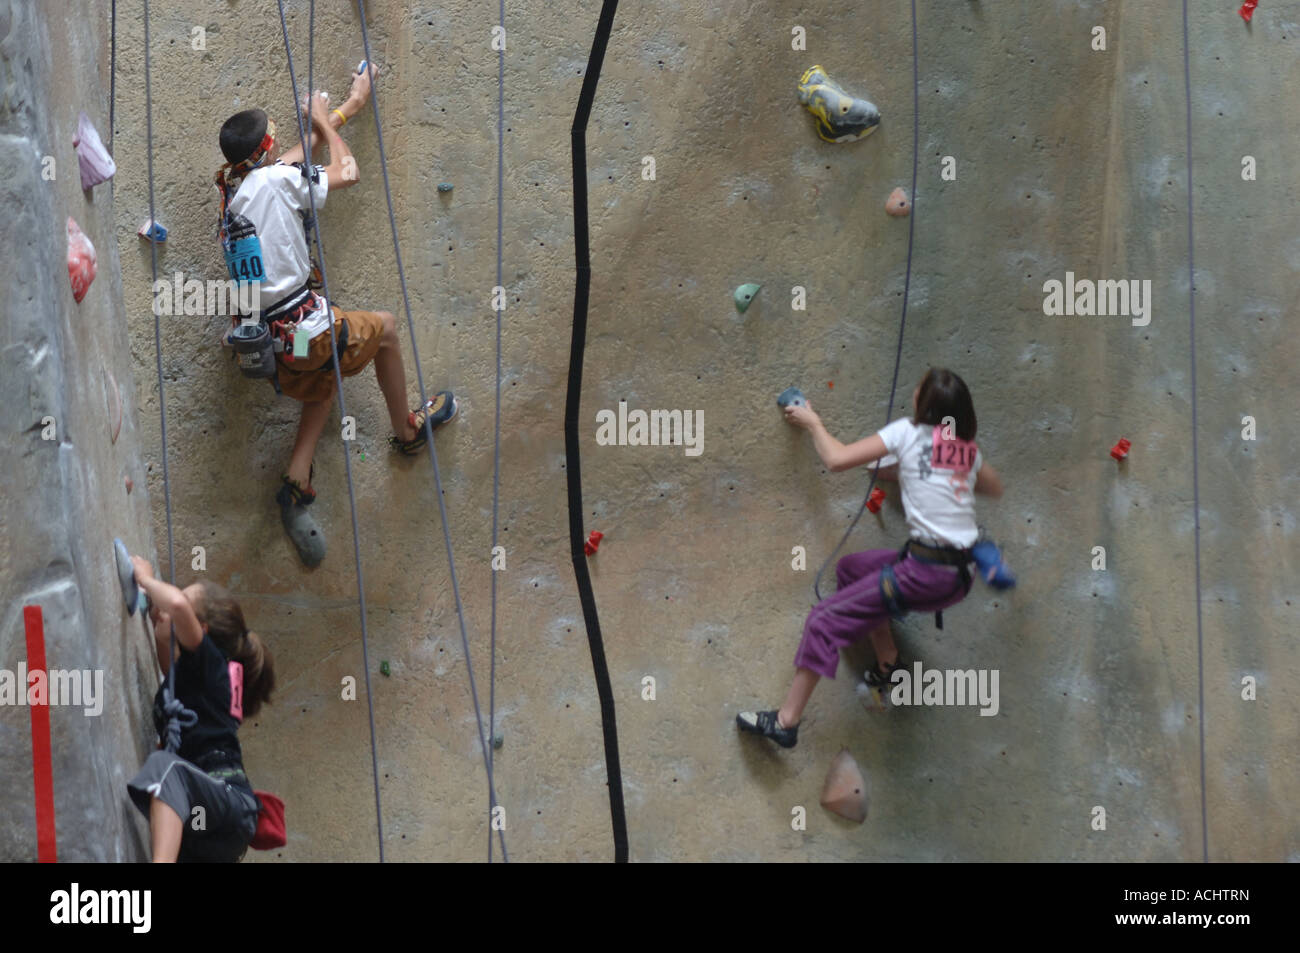 Young men and women climbing a wall at indoor climbing facility at a climbing competition - Stock Image